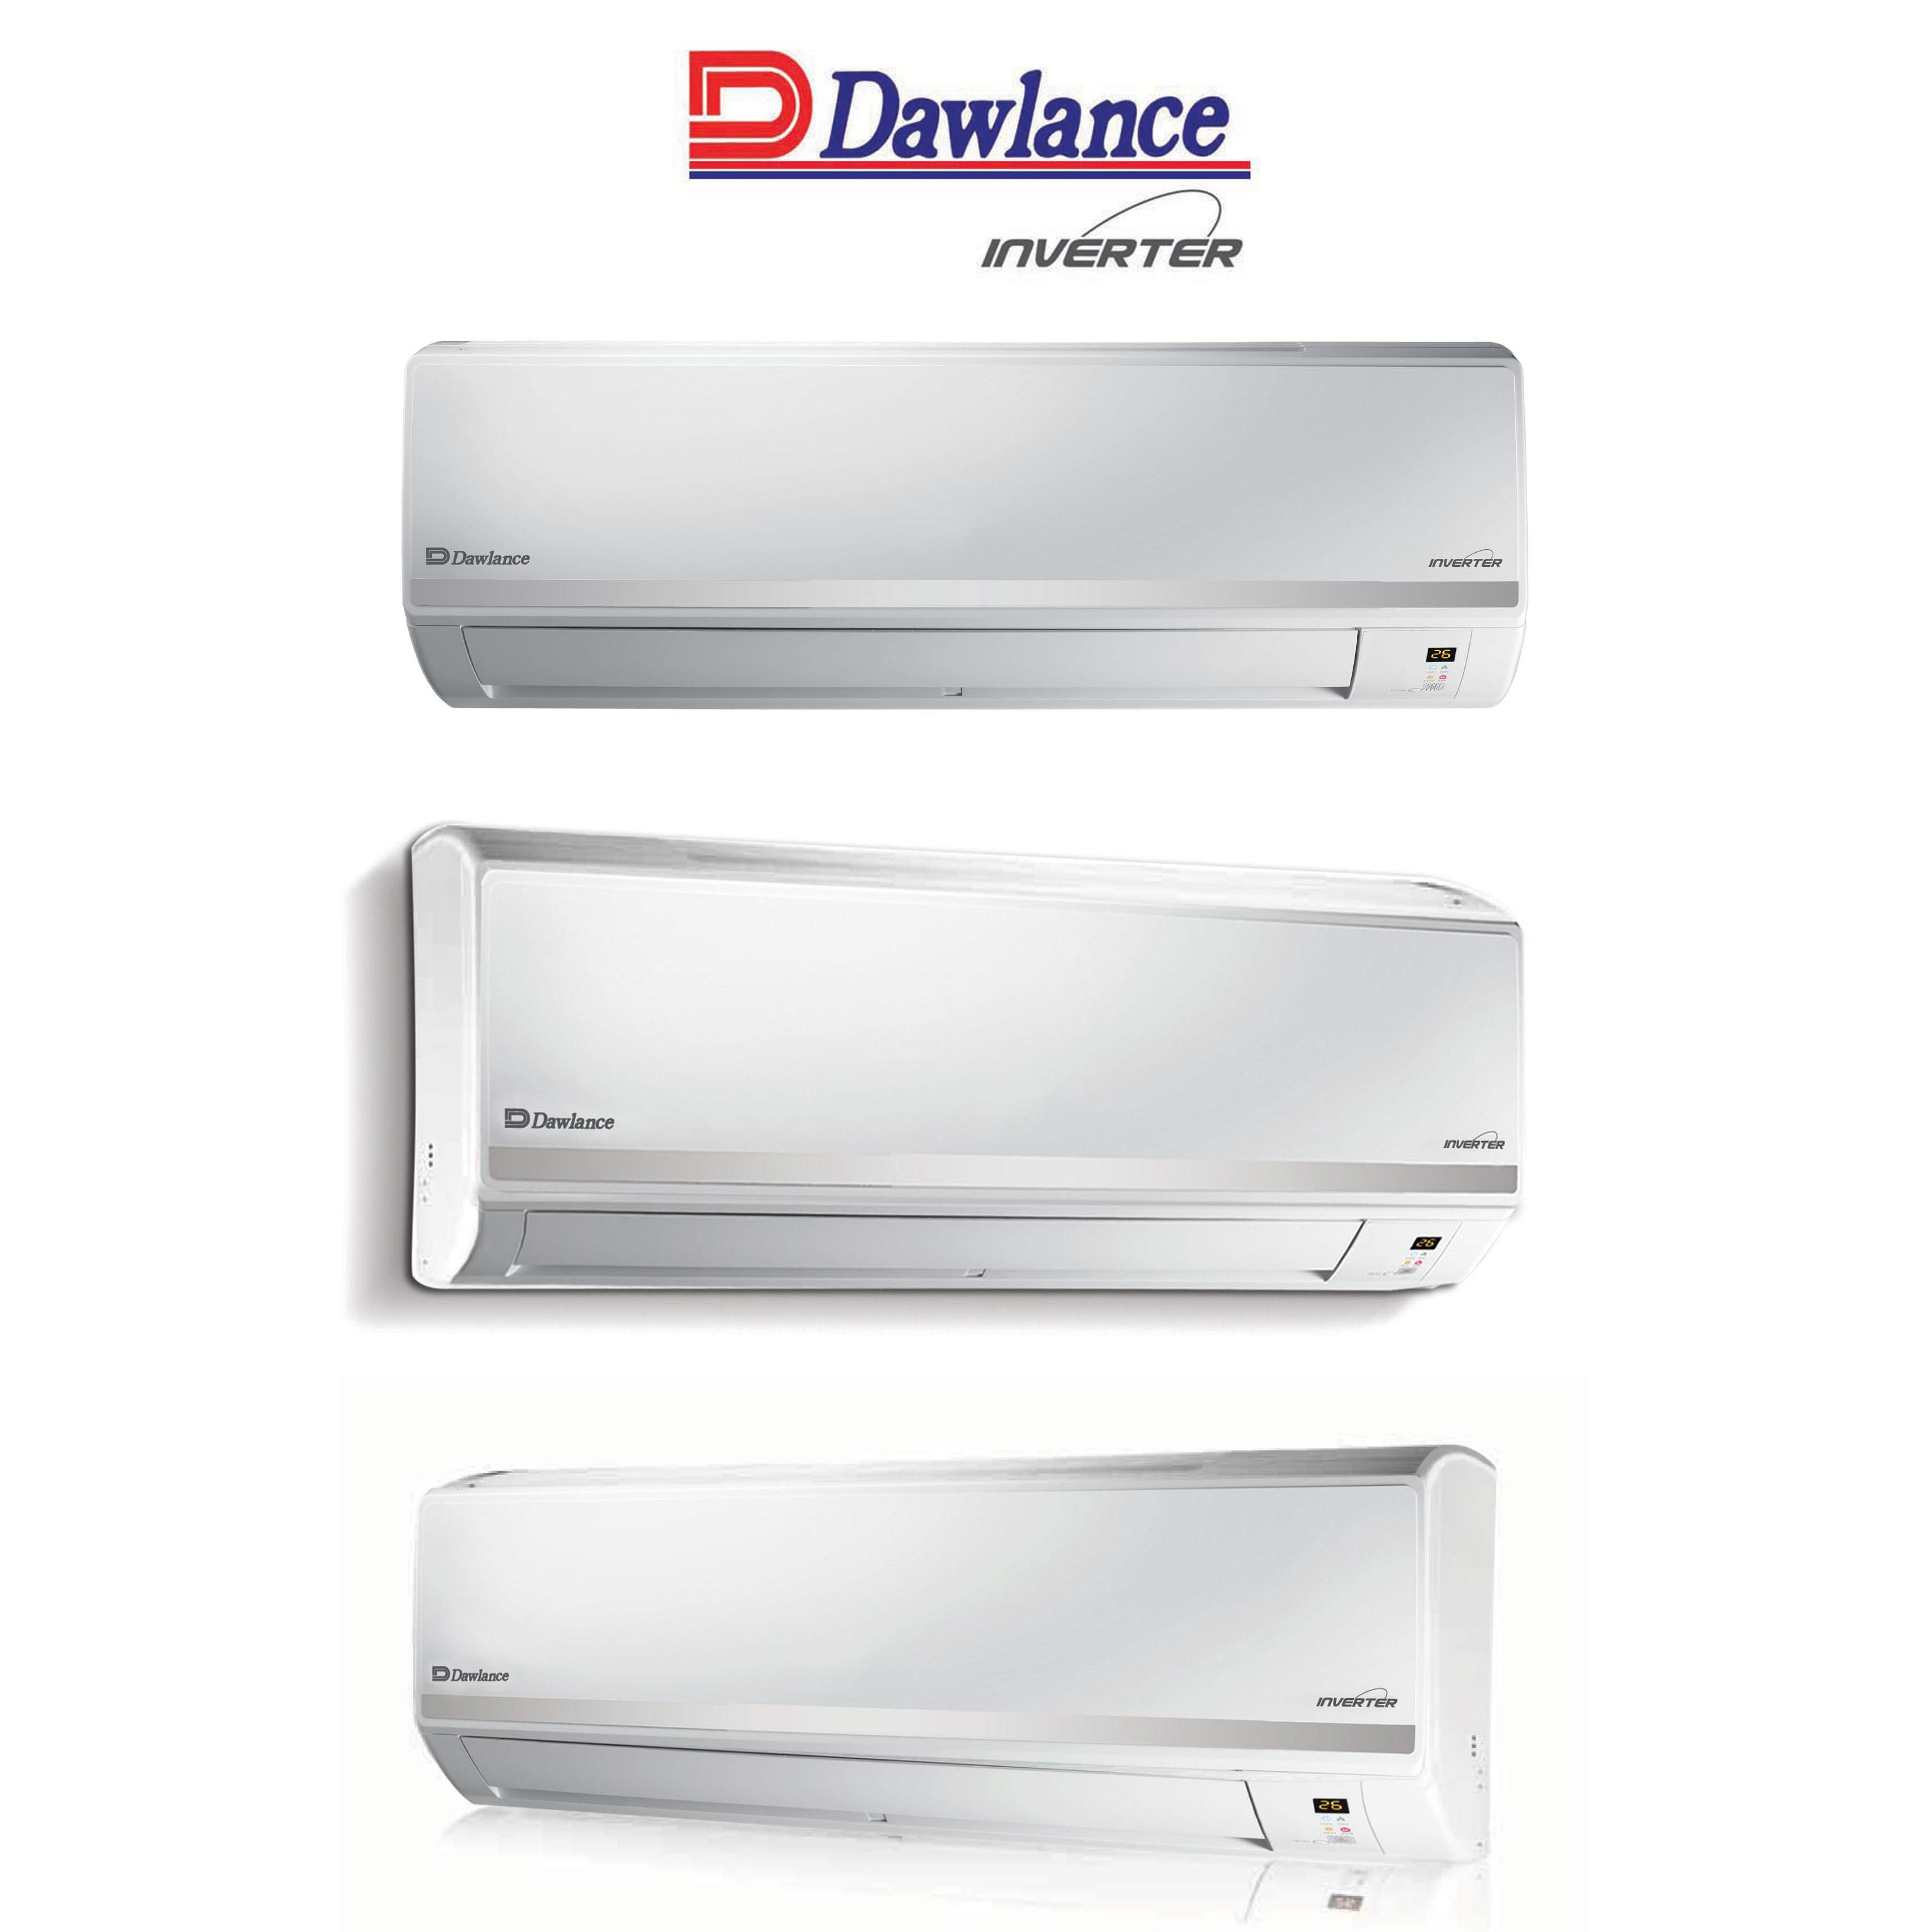 Dawlance Inverter AC new model pictures